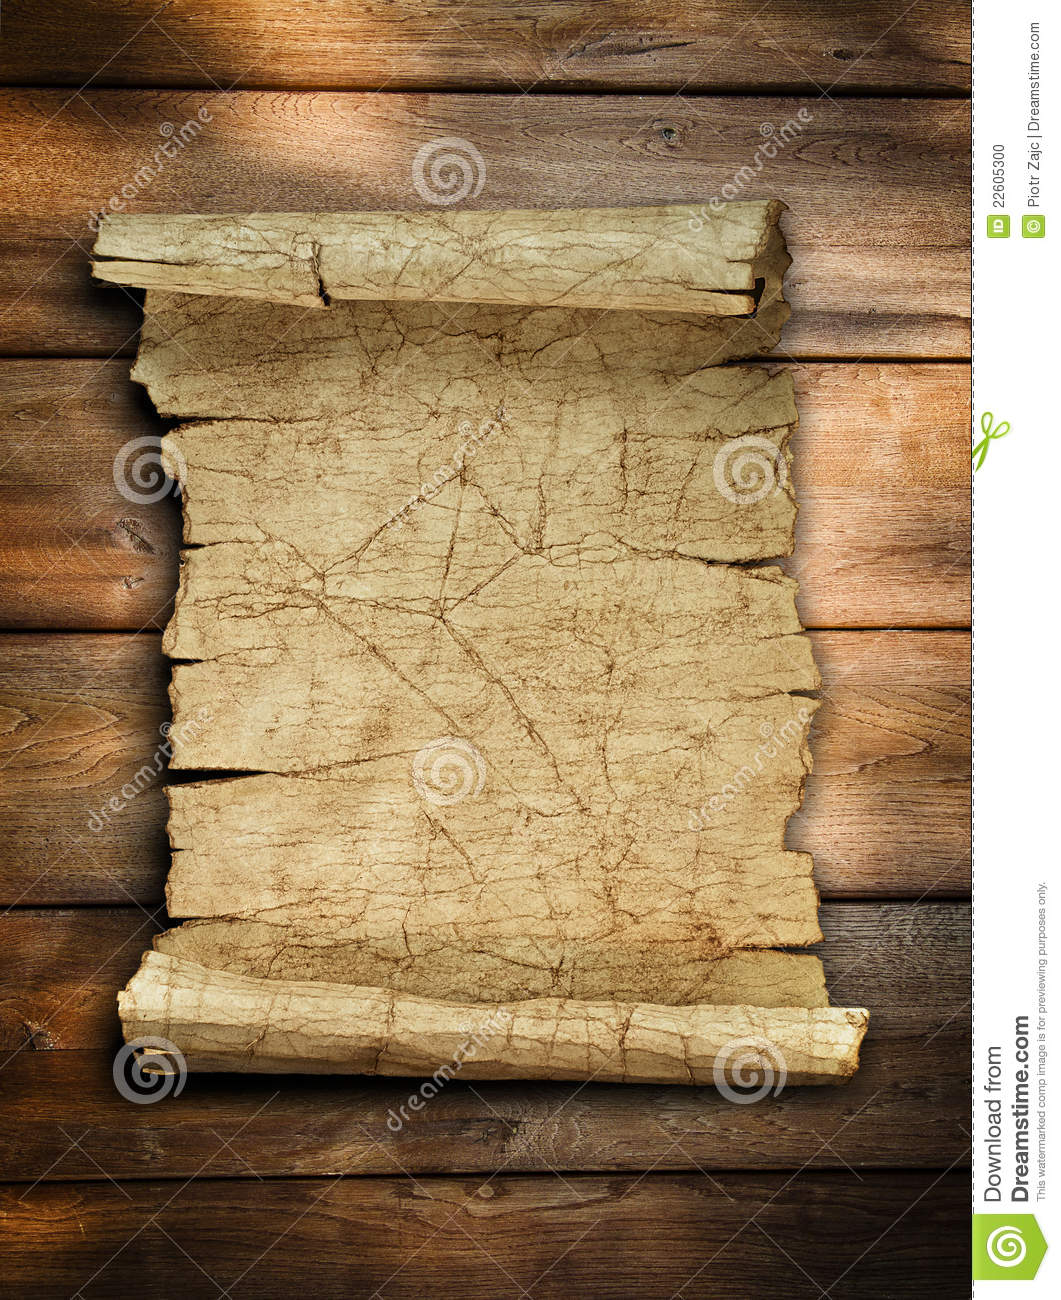 Vintage Old Paper Scroll At Wood Stock Photo Image 22605300